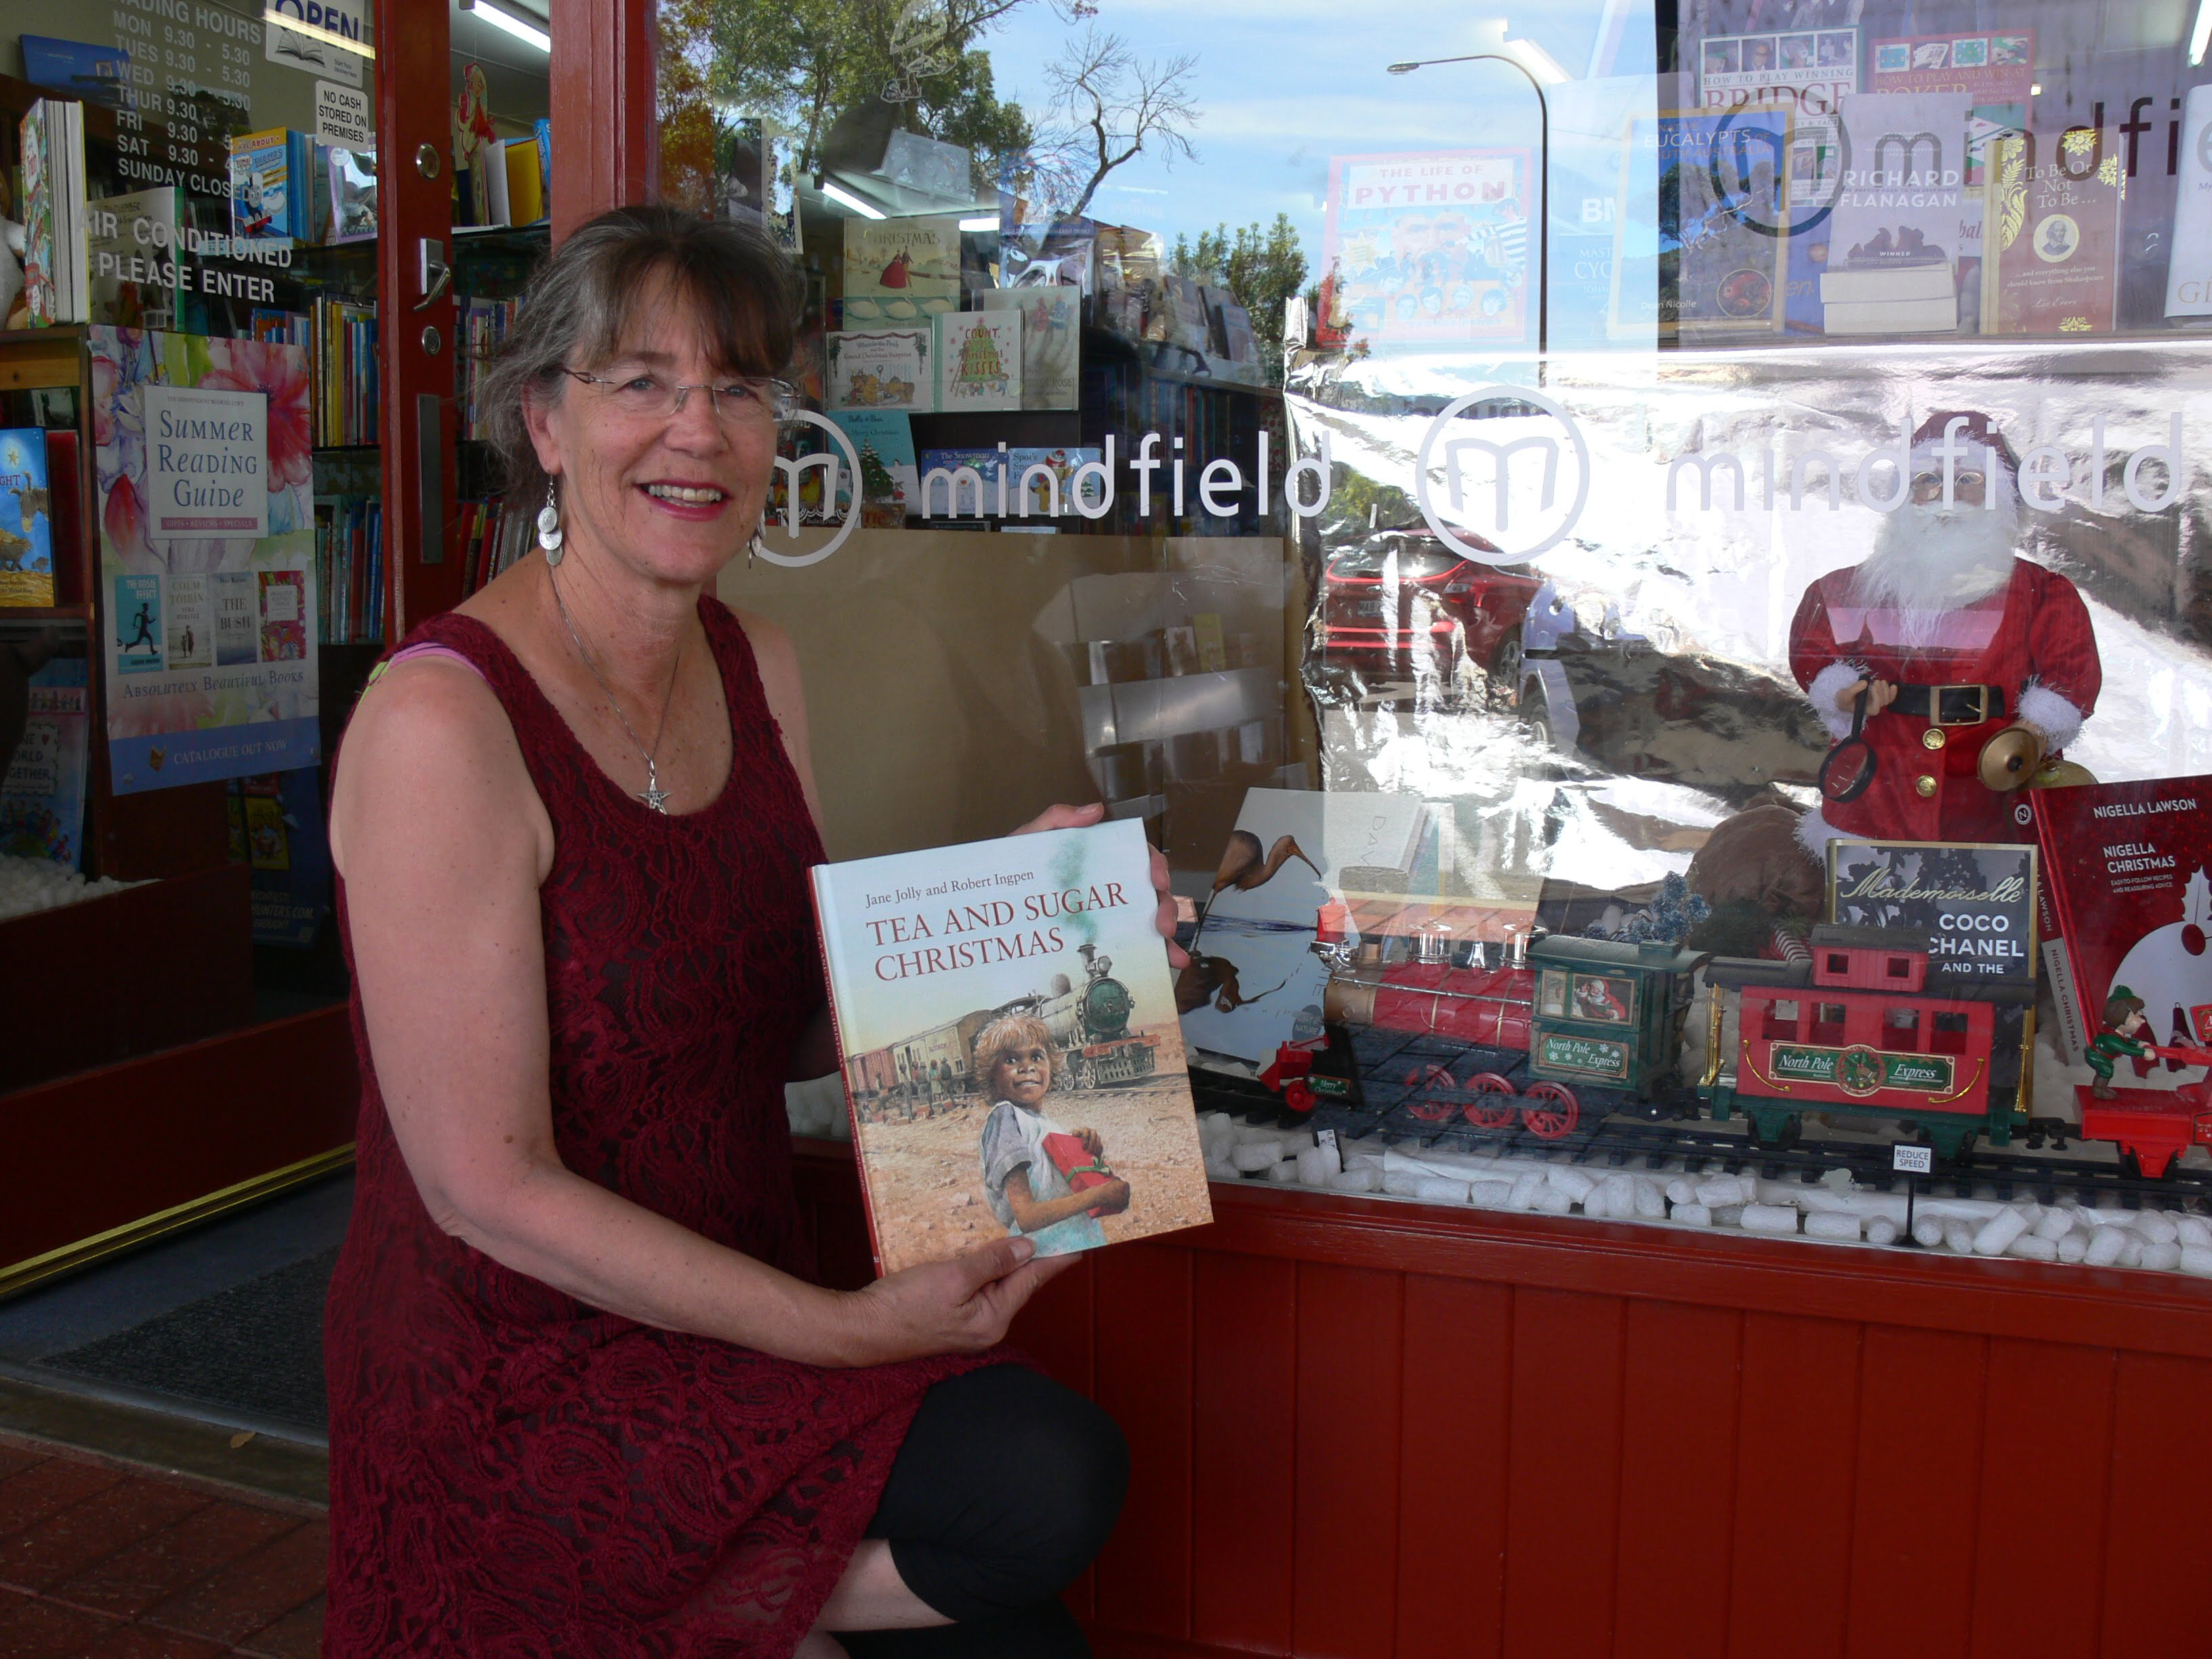 In front of the beautiful Christmas window at Mindfield Books at Blackwood...soon to be Shakespeare's. There was a gorgeous Christmas train on display.